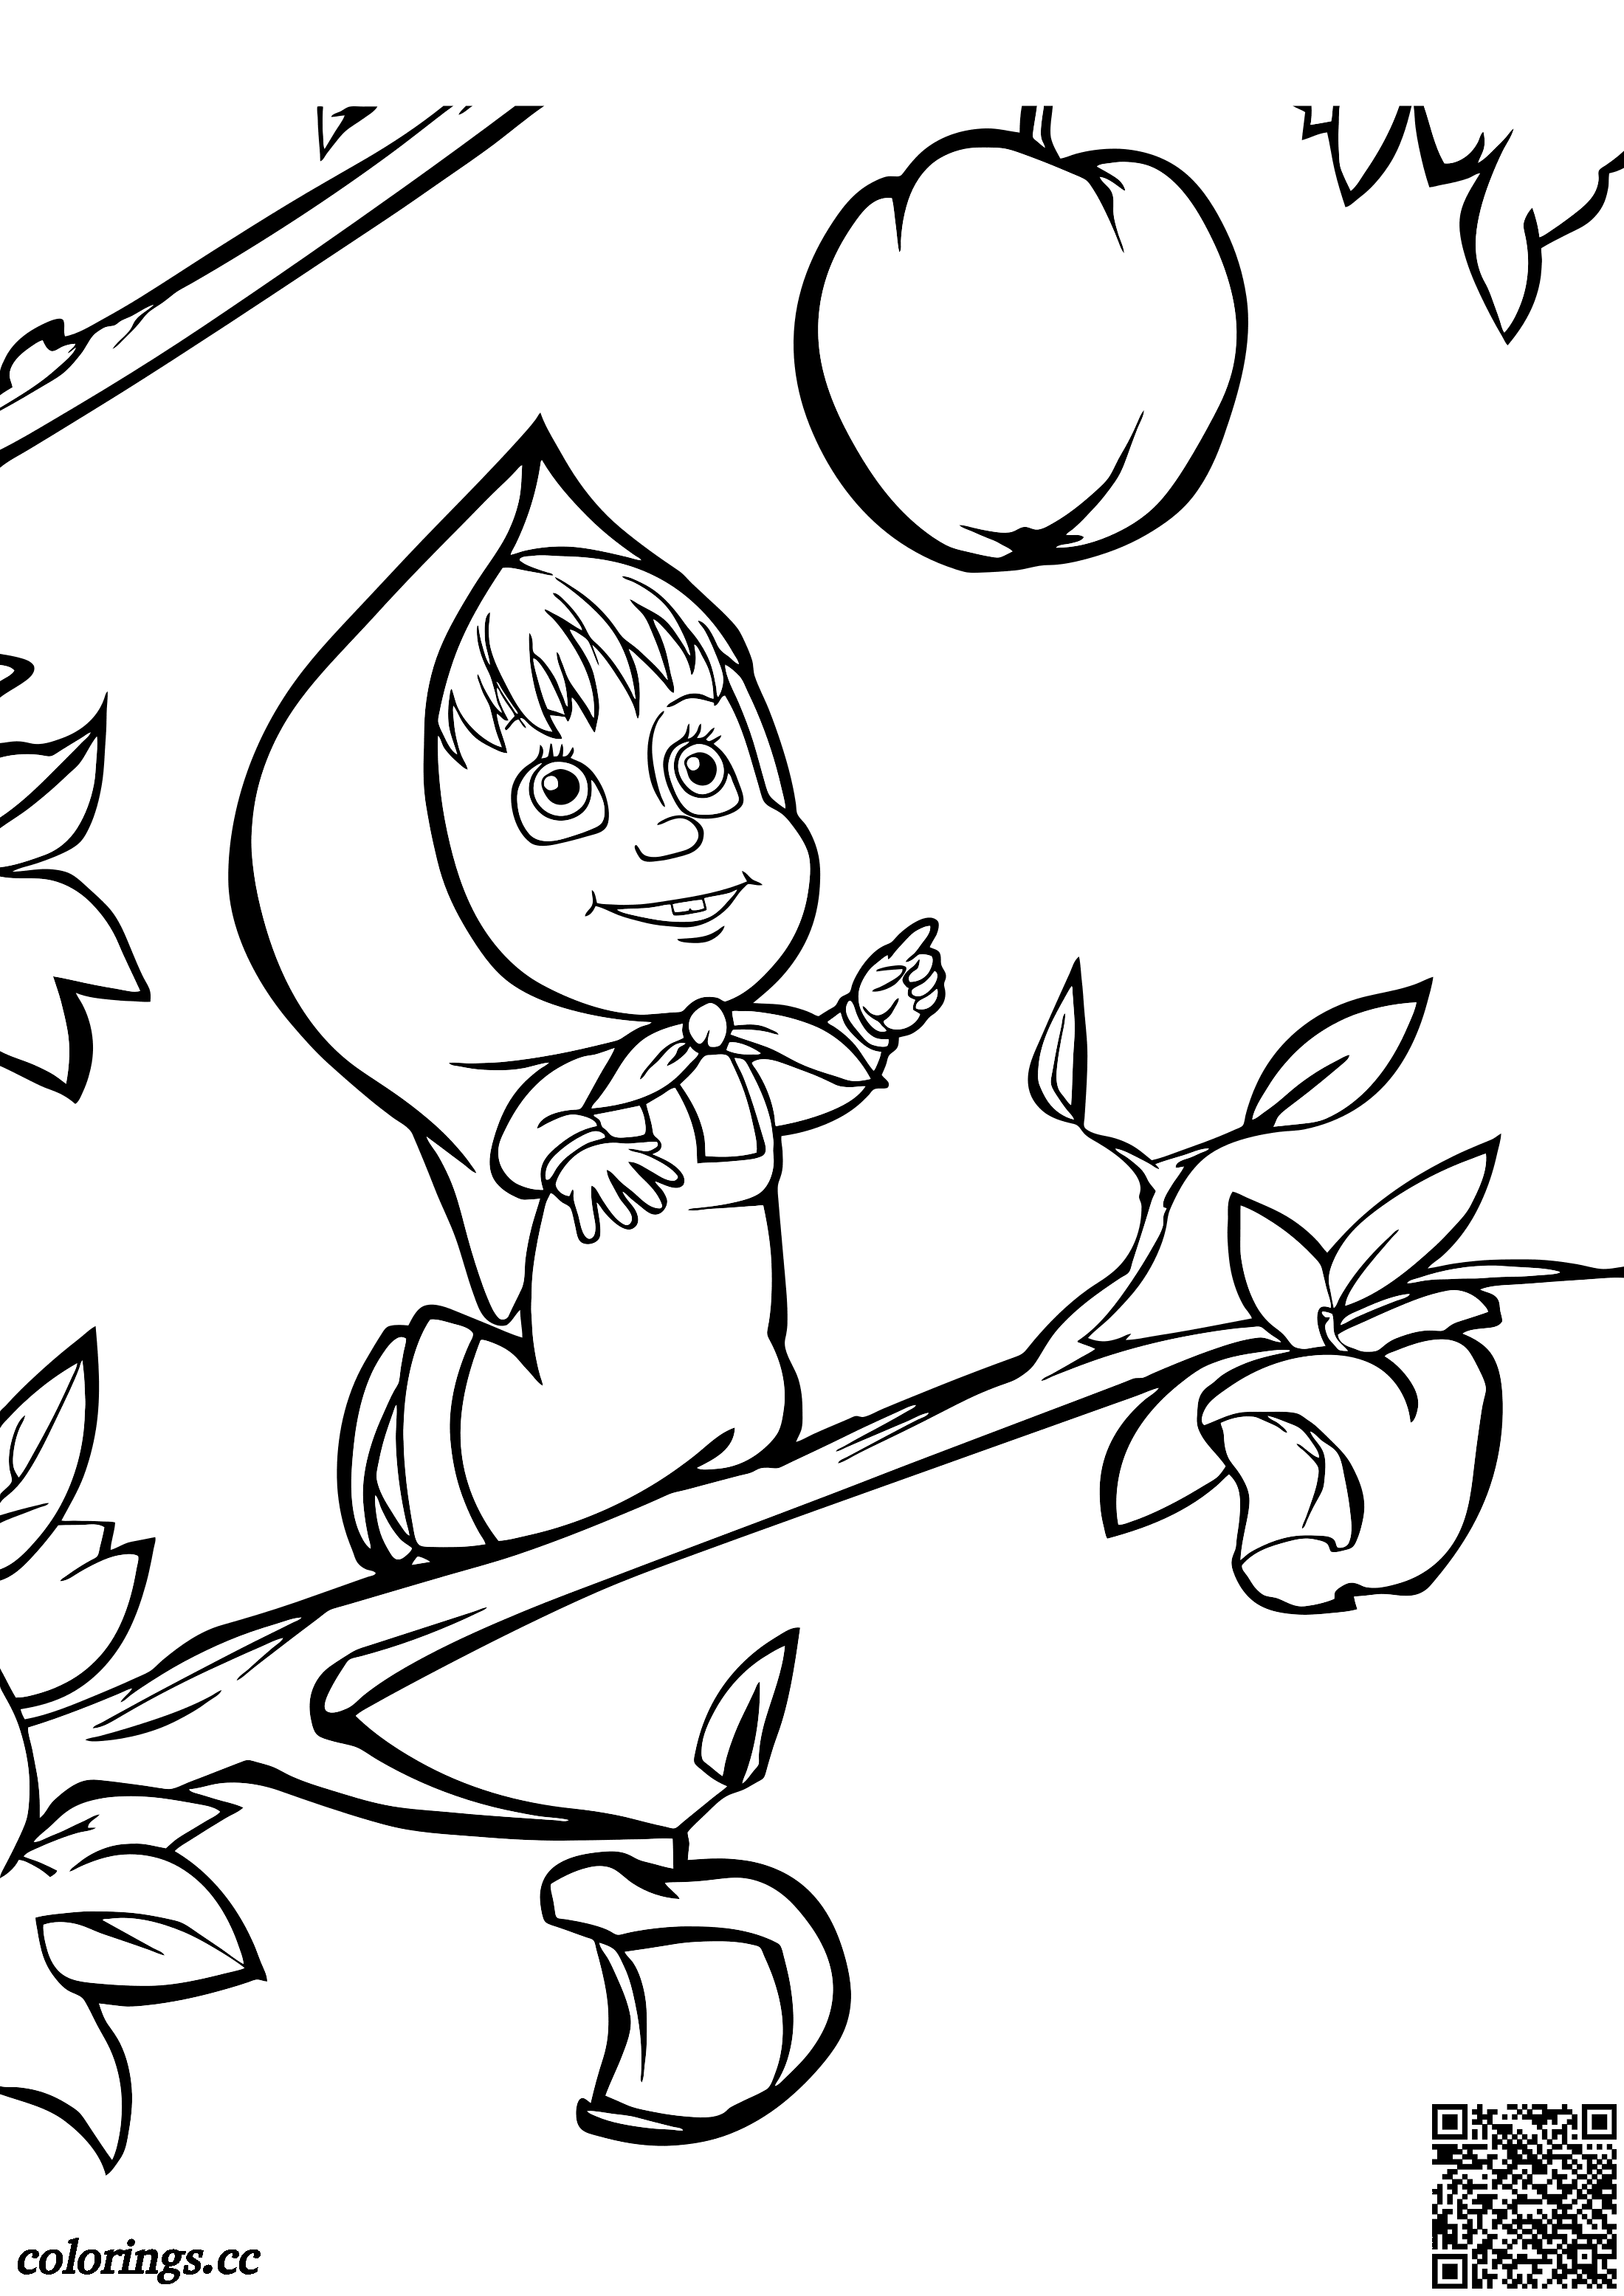 Masha Climbed An Apple Tree Coloring Pages Masha And The Bear Coloring Pages Colorings Cc